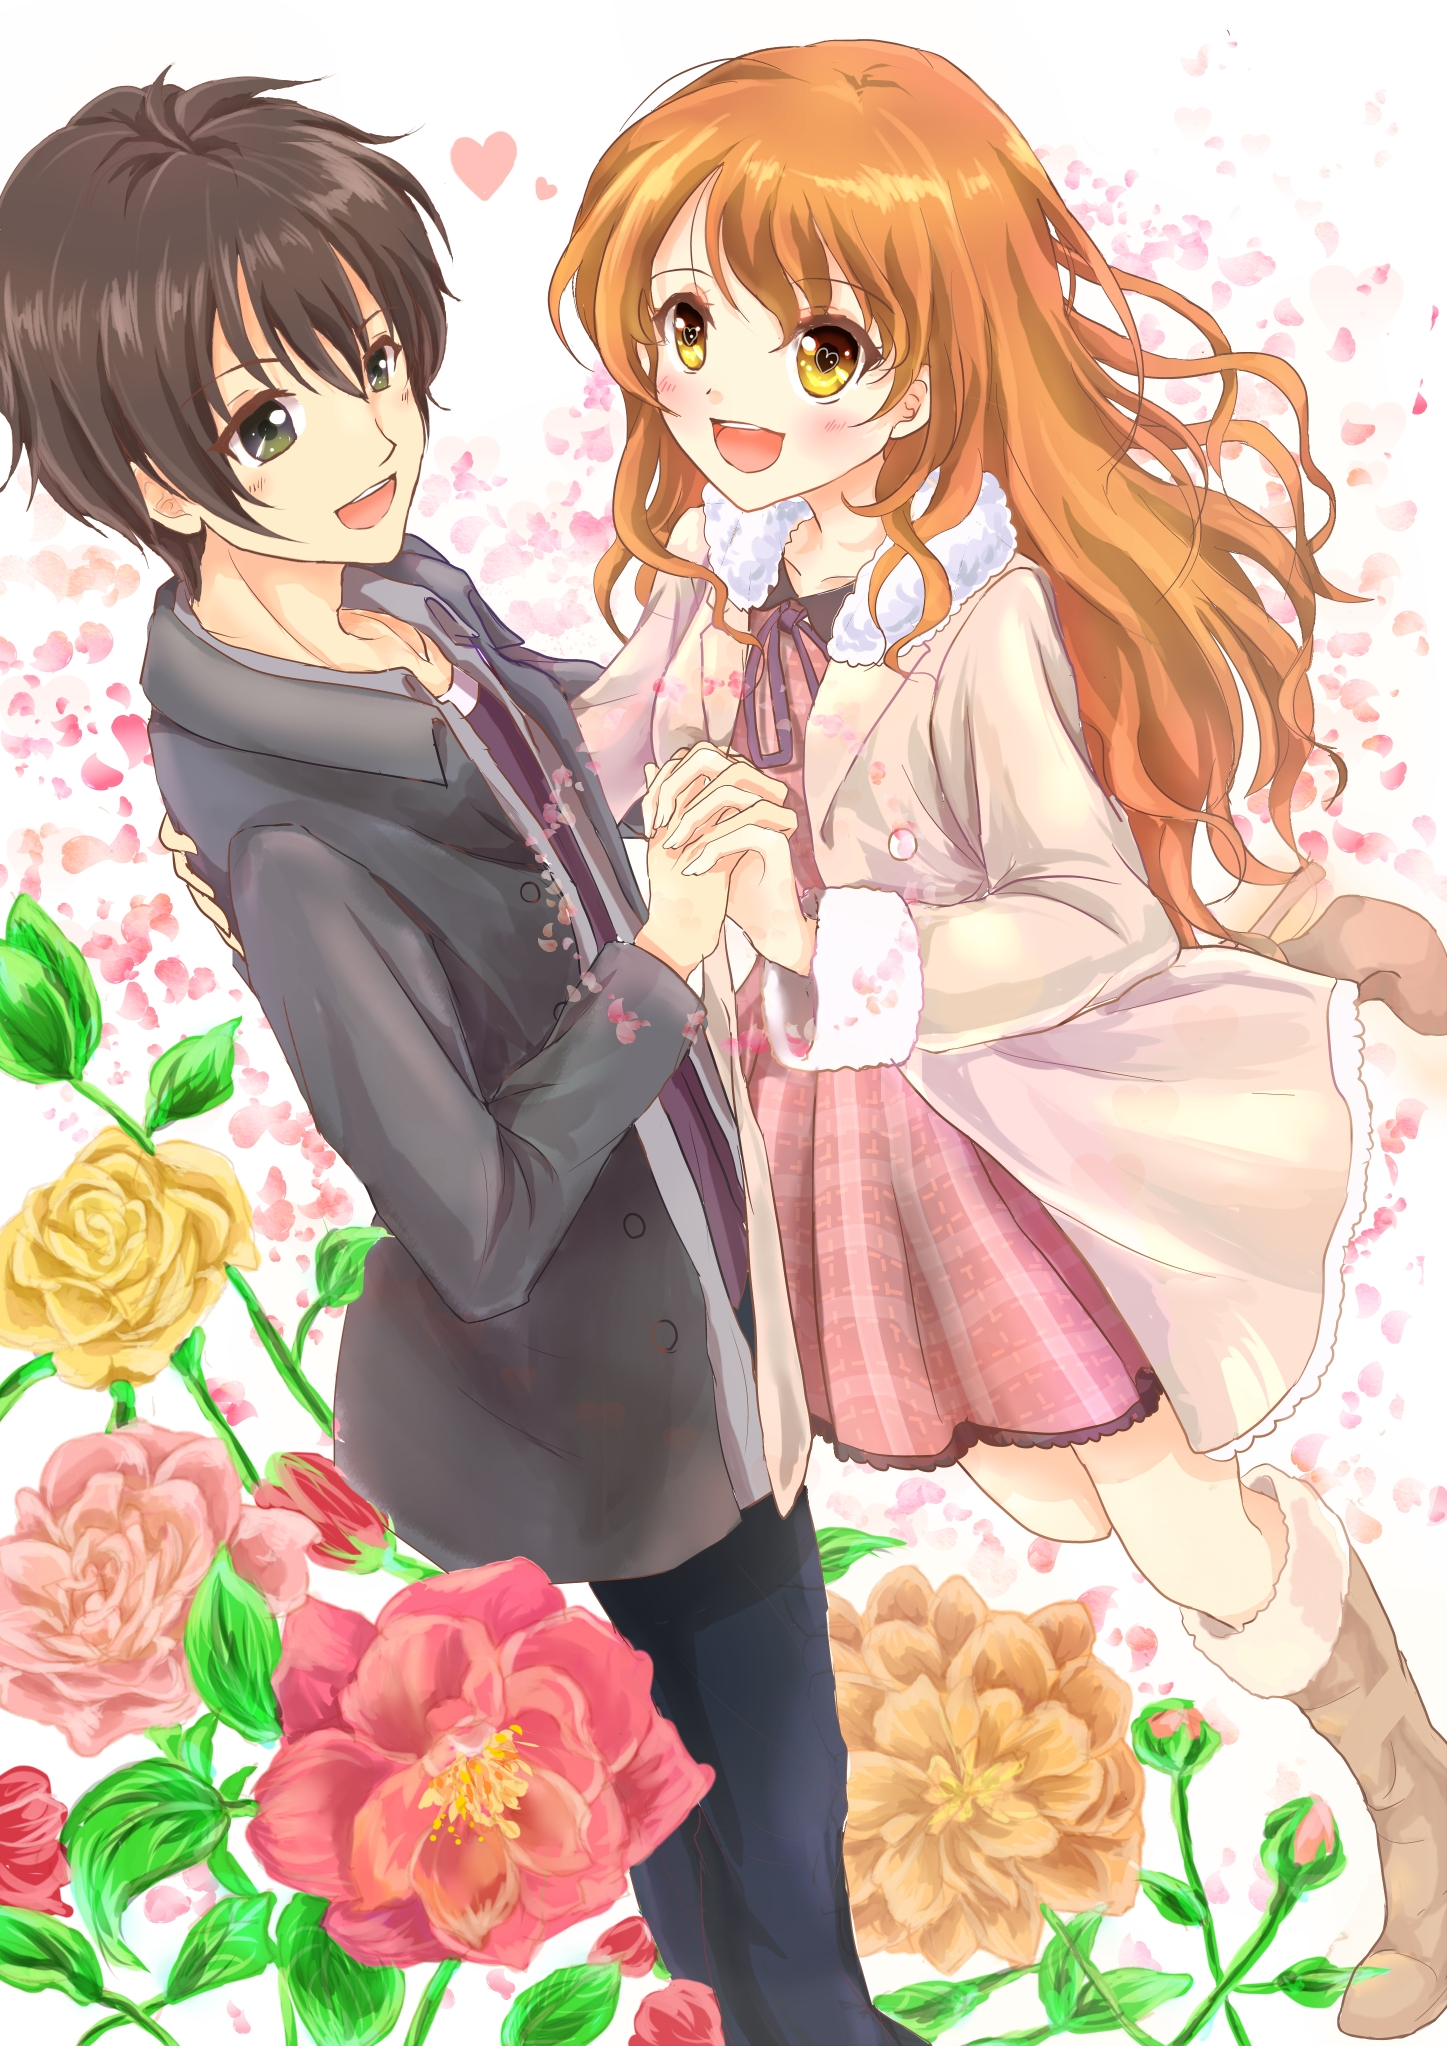 Golden Time Backgrounds, Compatible - PC, Mobile, Gadgets| 1447x2046 px